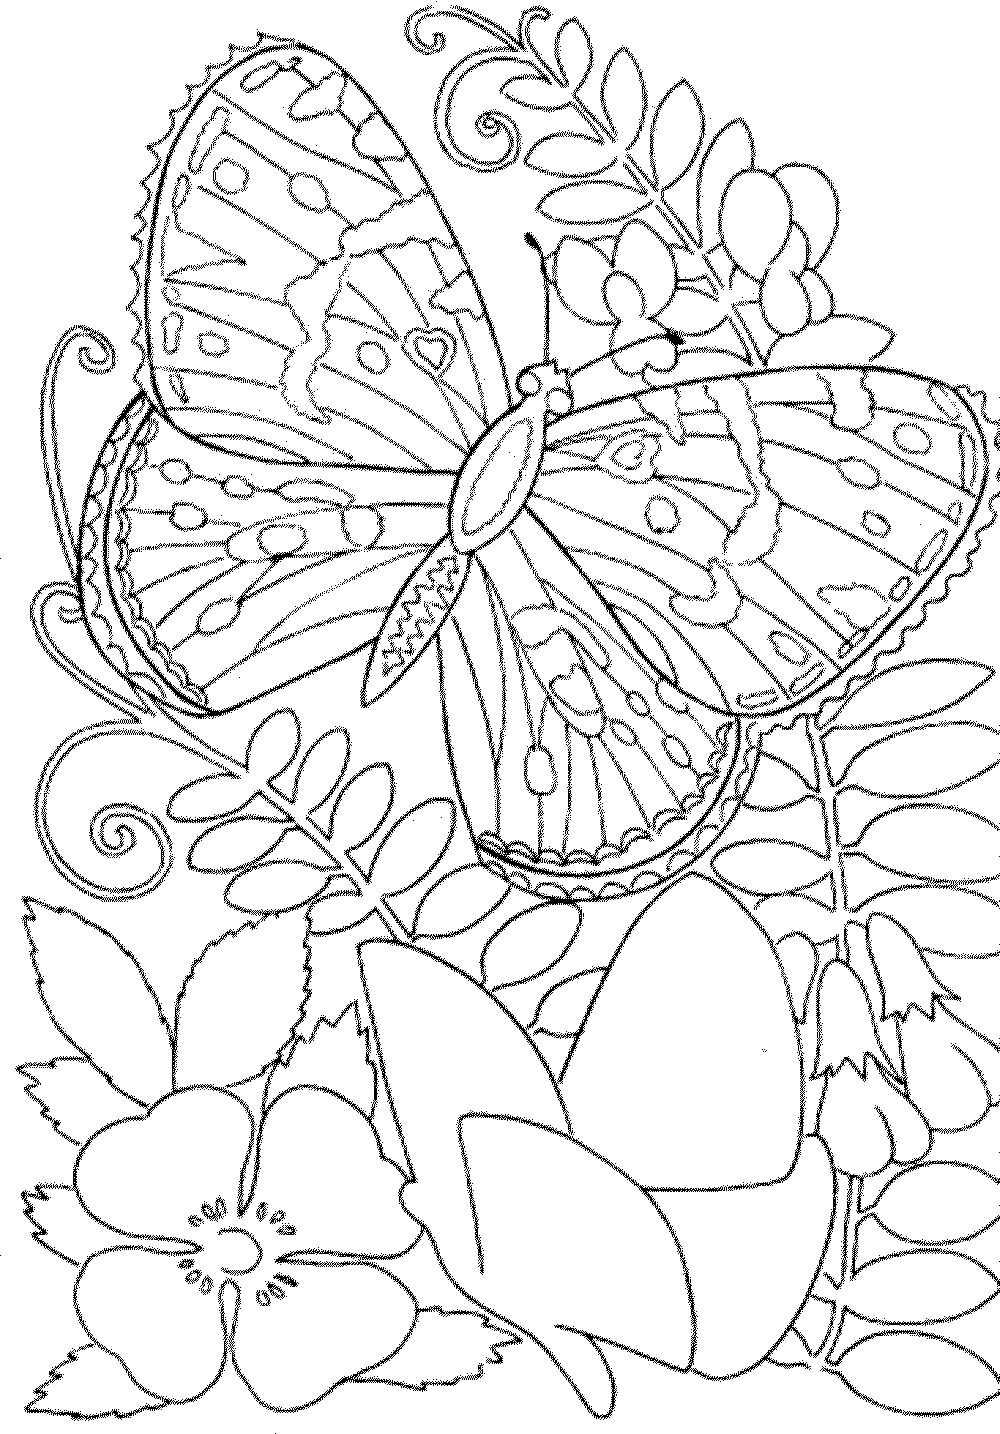 coloring pages for adults free online 37 best adults coloring pages updated 2018 free online for adults coloring pages